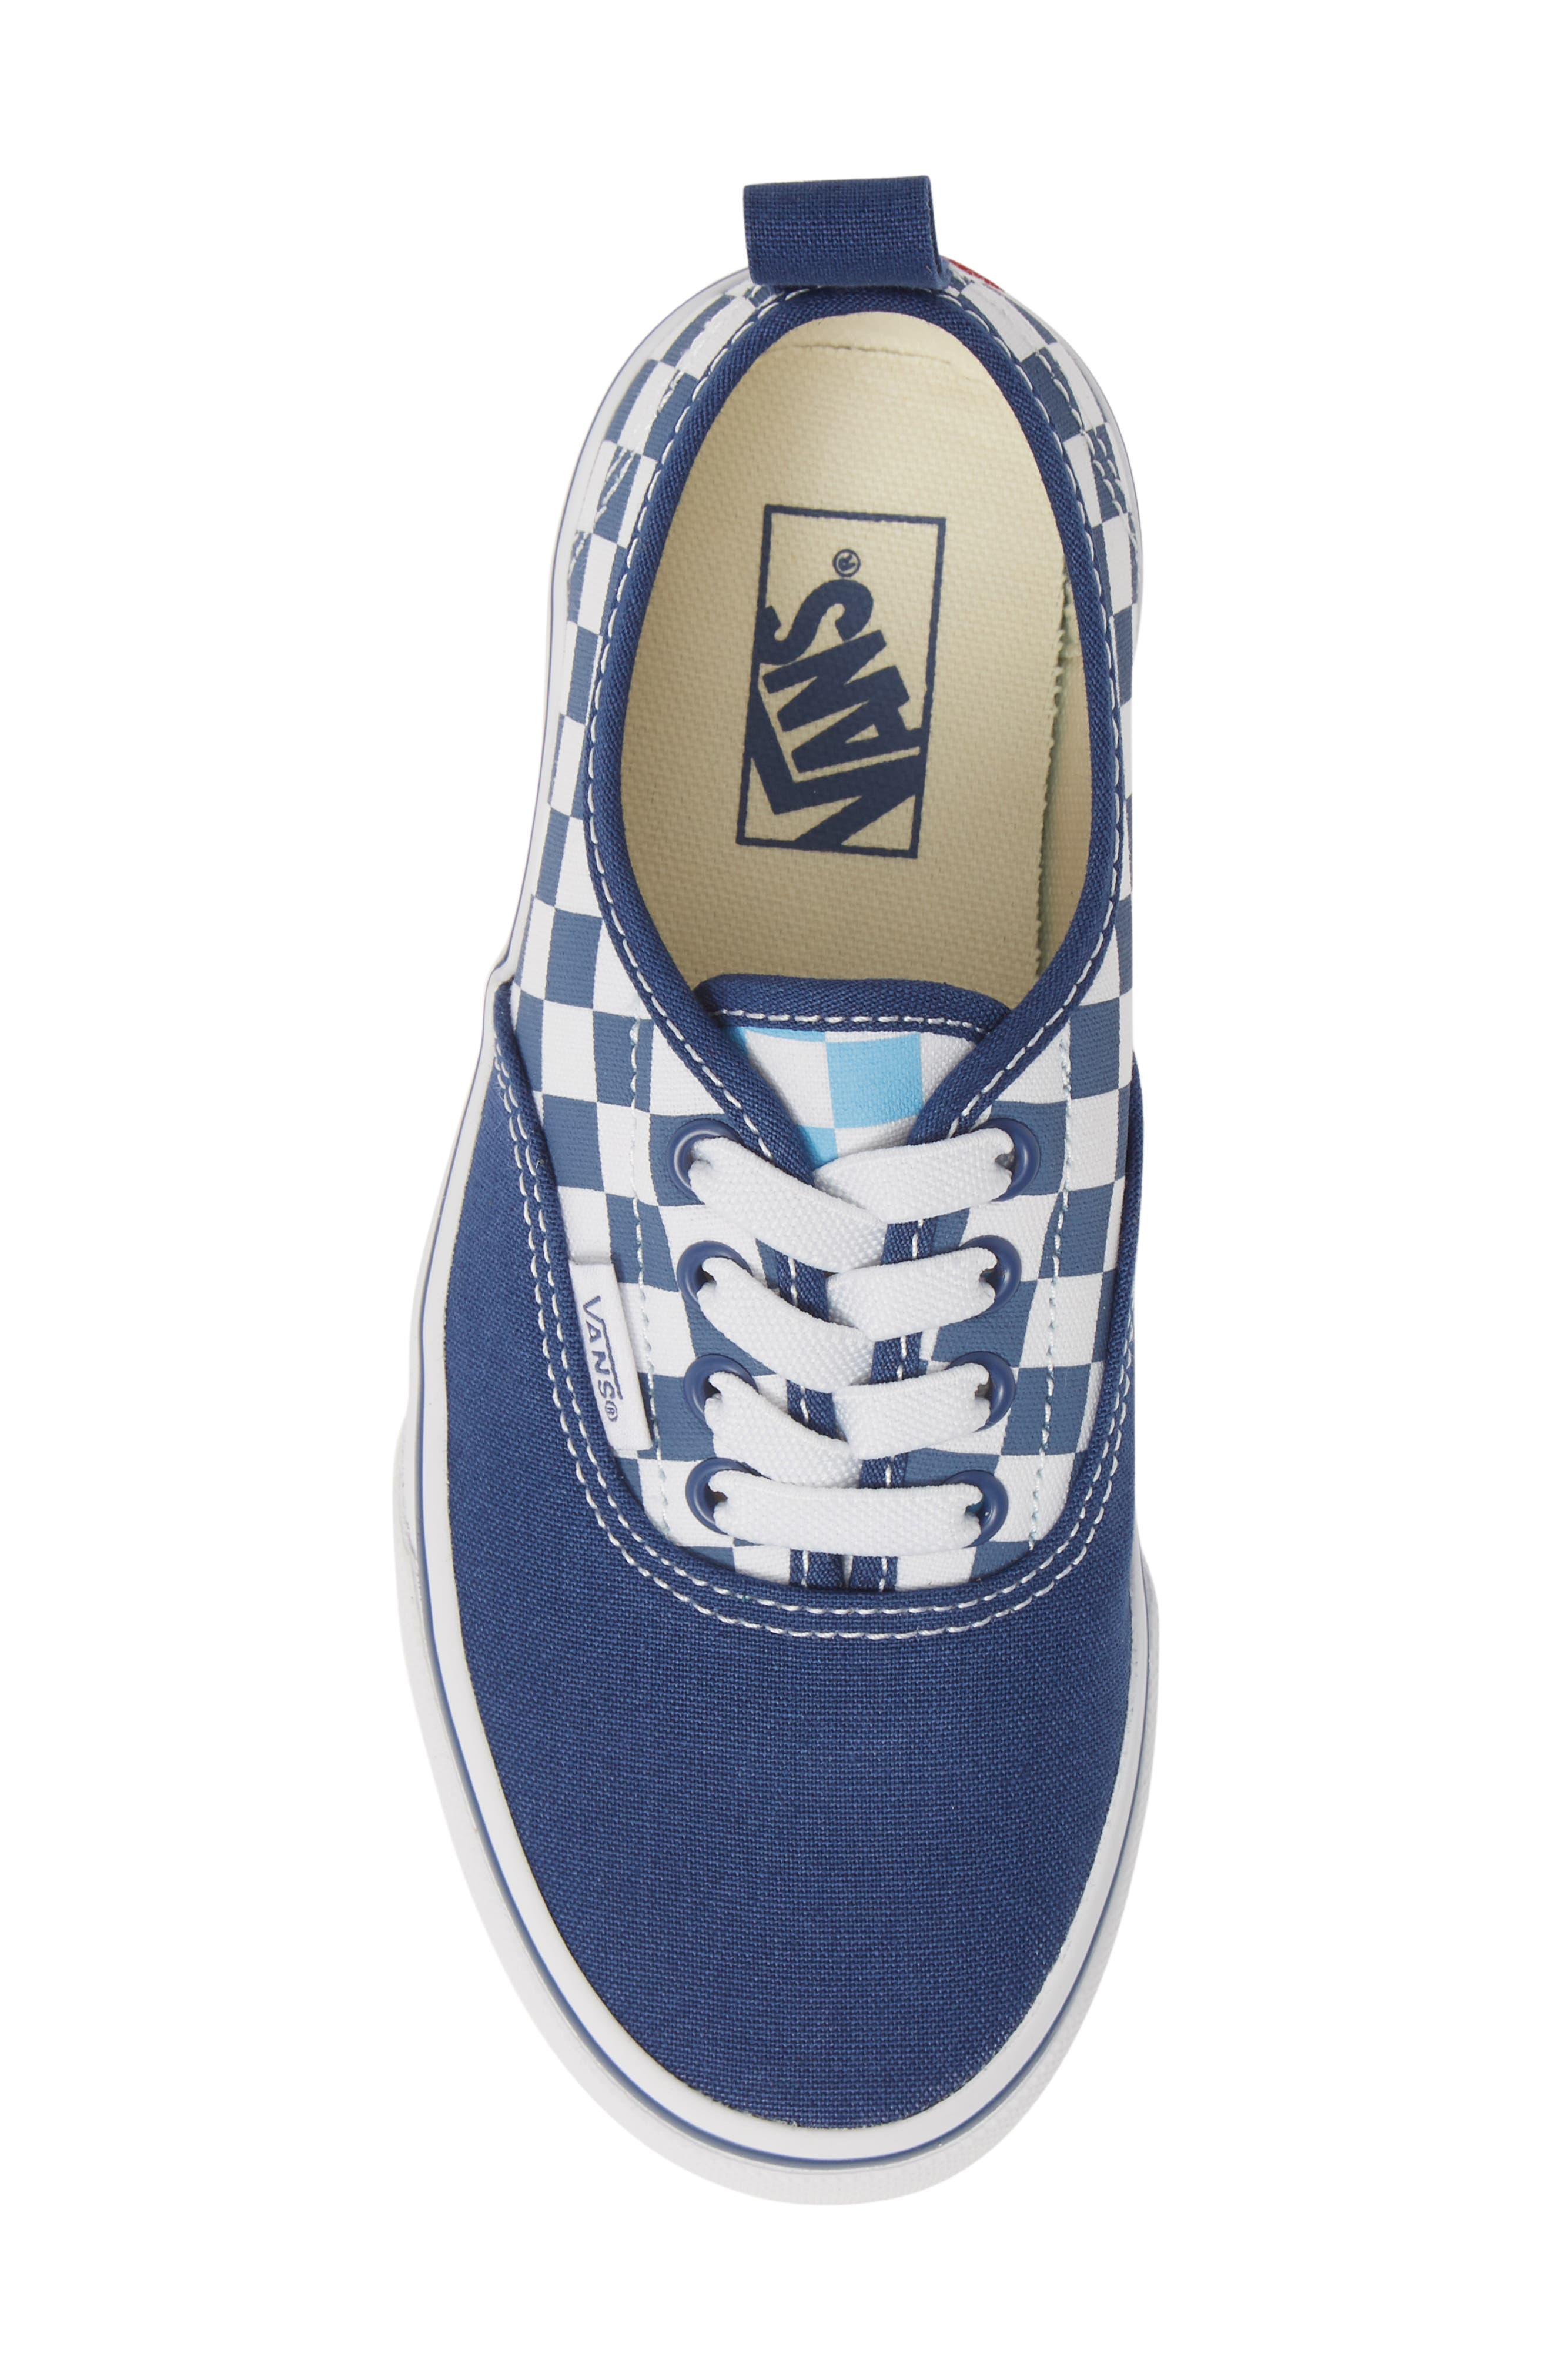 VANS, Authentic Elastic Lace Sneaker, Alternate thumbnail 5, color, TRUE NAVY/ BONNIE BLUE